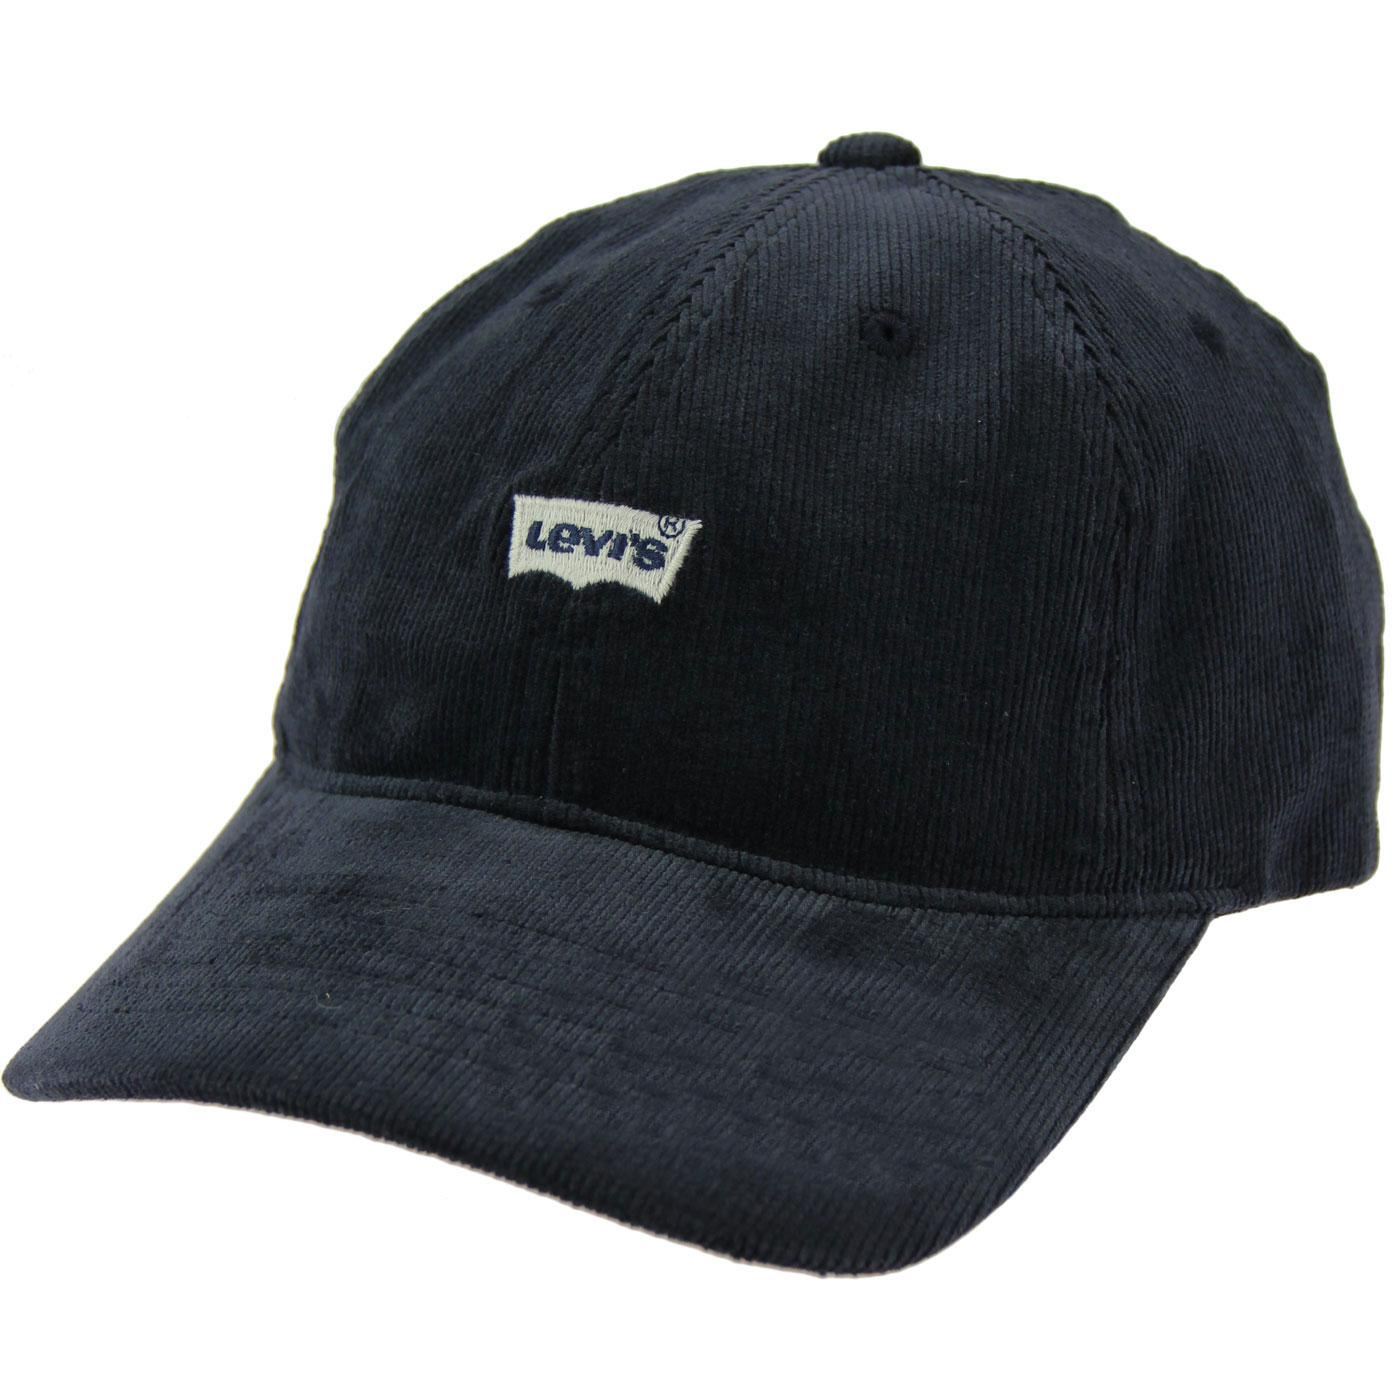 LEVI'S Men's Retro Cord Batwing Trucker Cap (Navy)